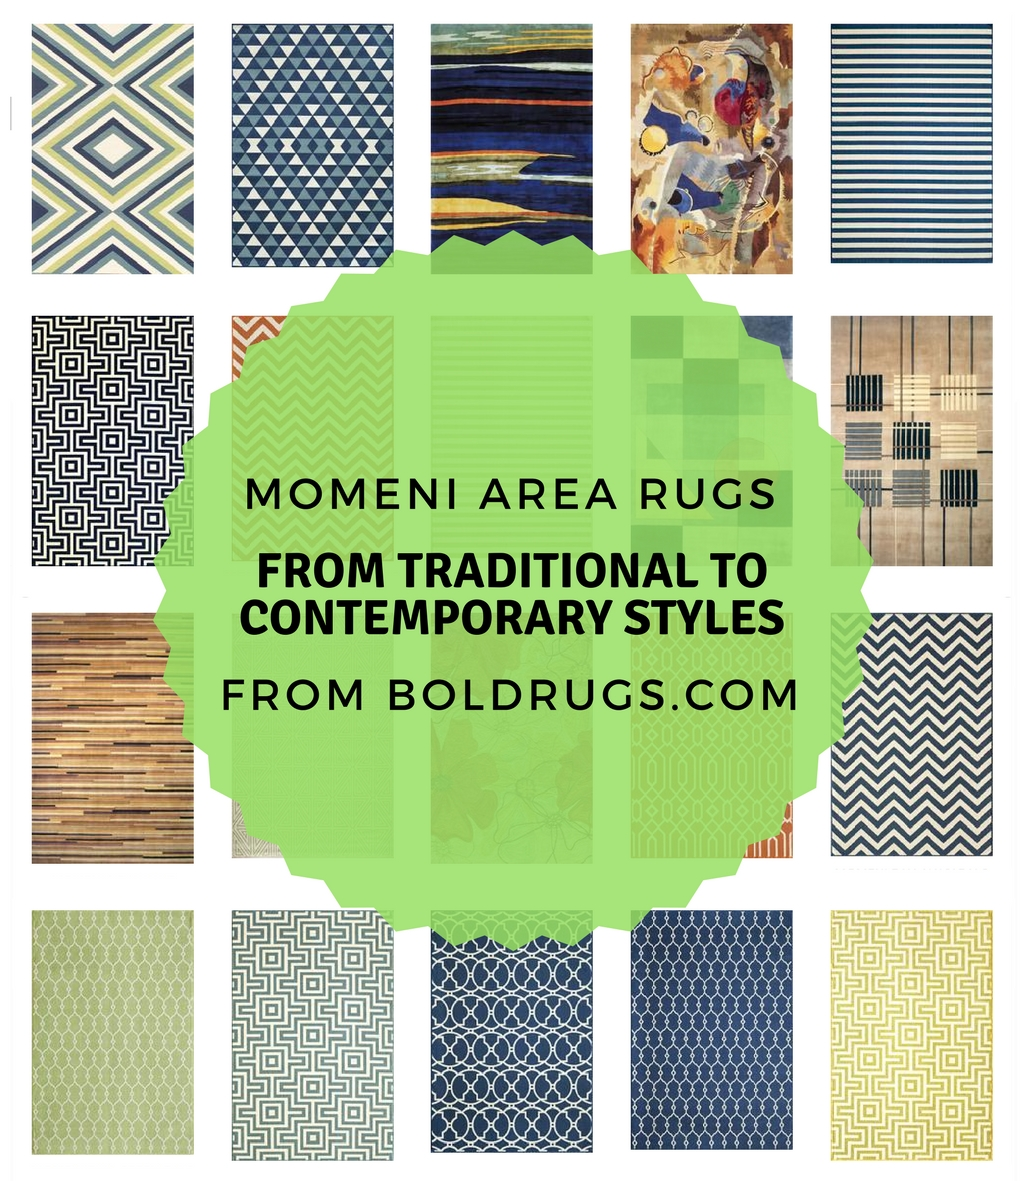 Momeni Area Rugs - From Traditional to Contemporary Styles